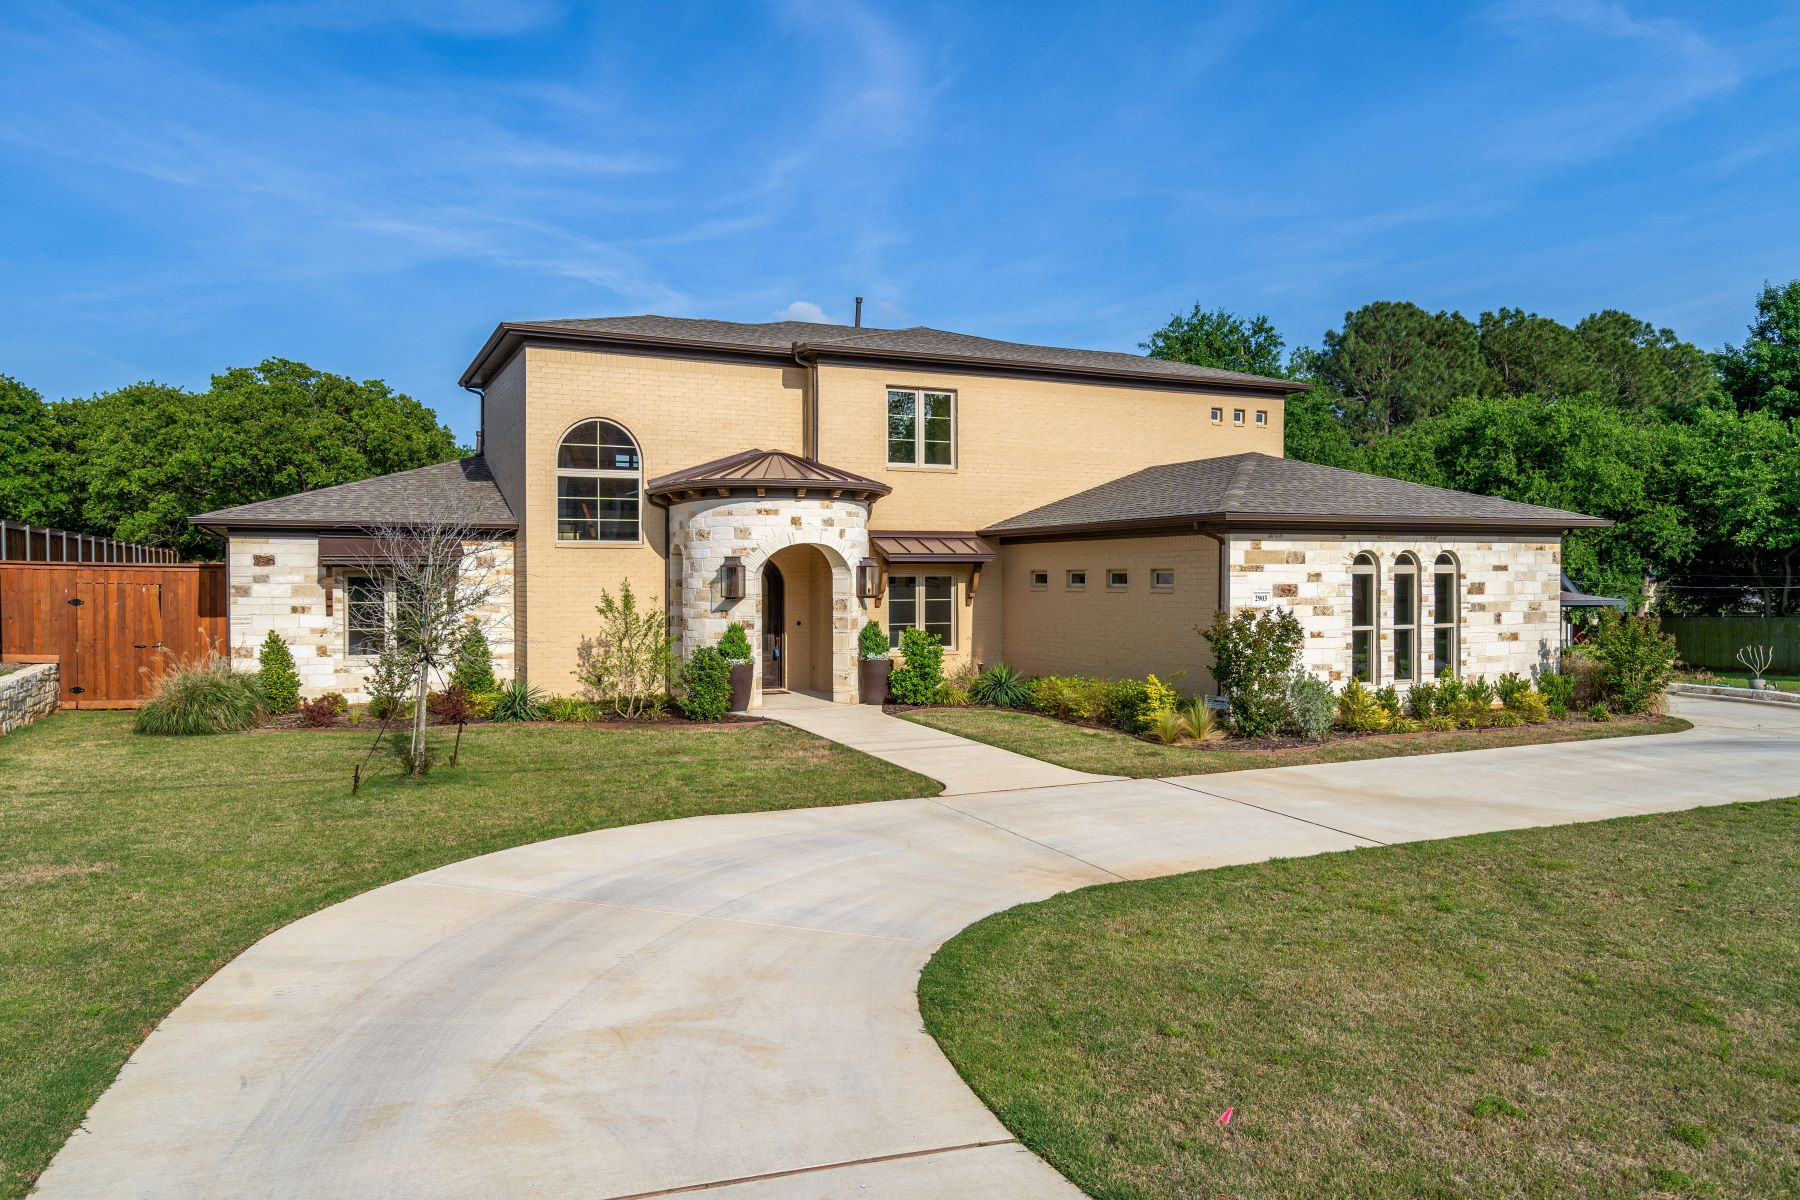 Single Family Homes for Sale at Southlake New Transitional 2903 Sutton Place Southlake, Texas 76092 United States